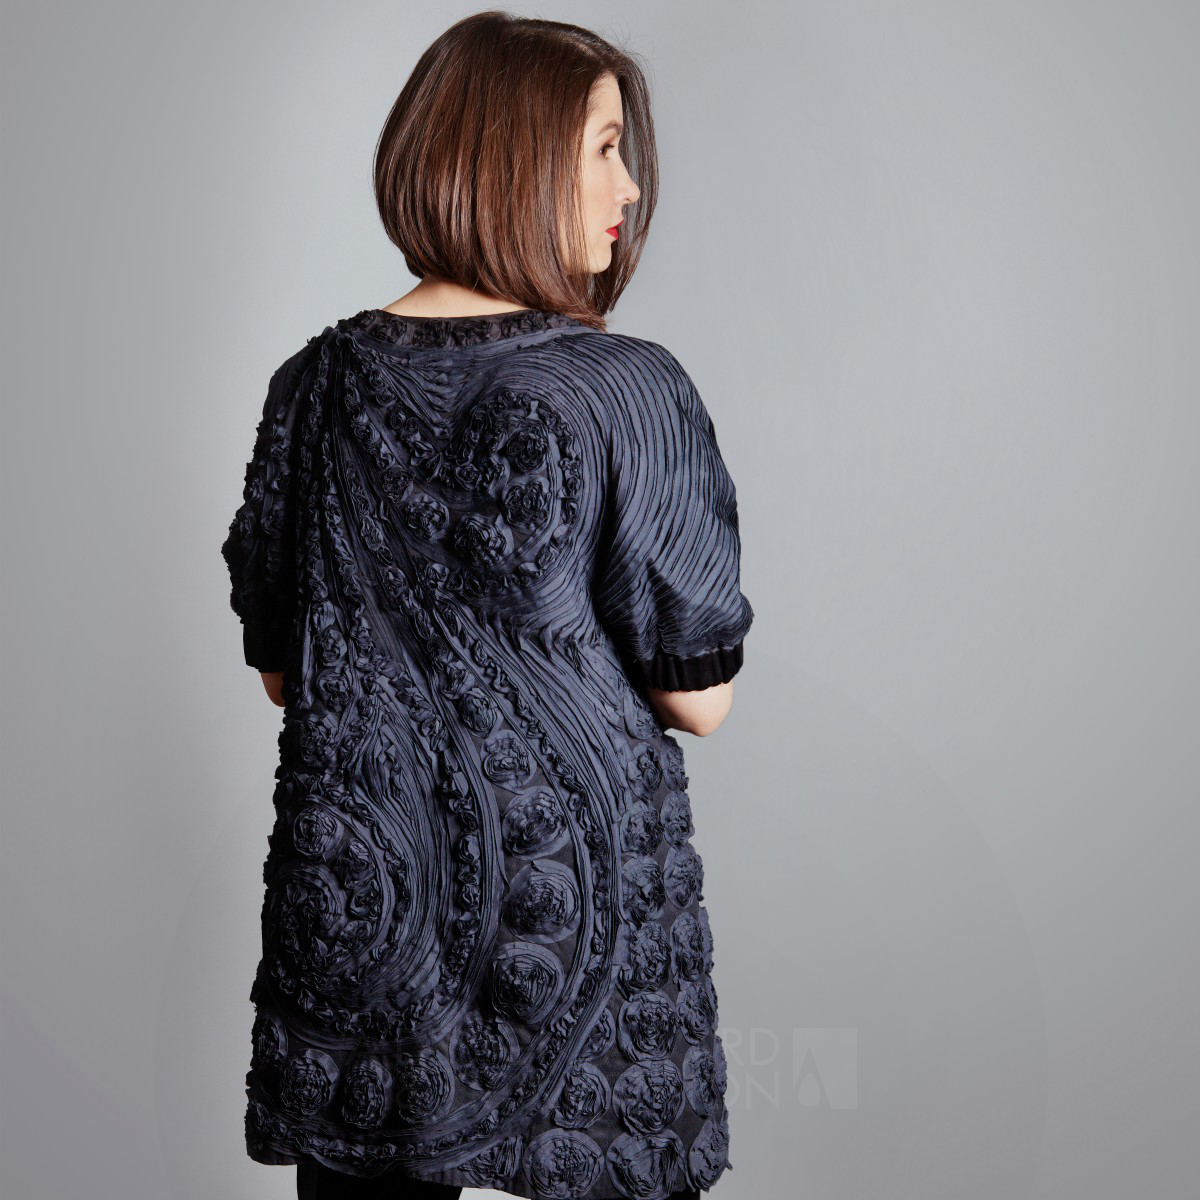 The Silk Road Womenswear Collection